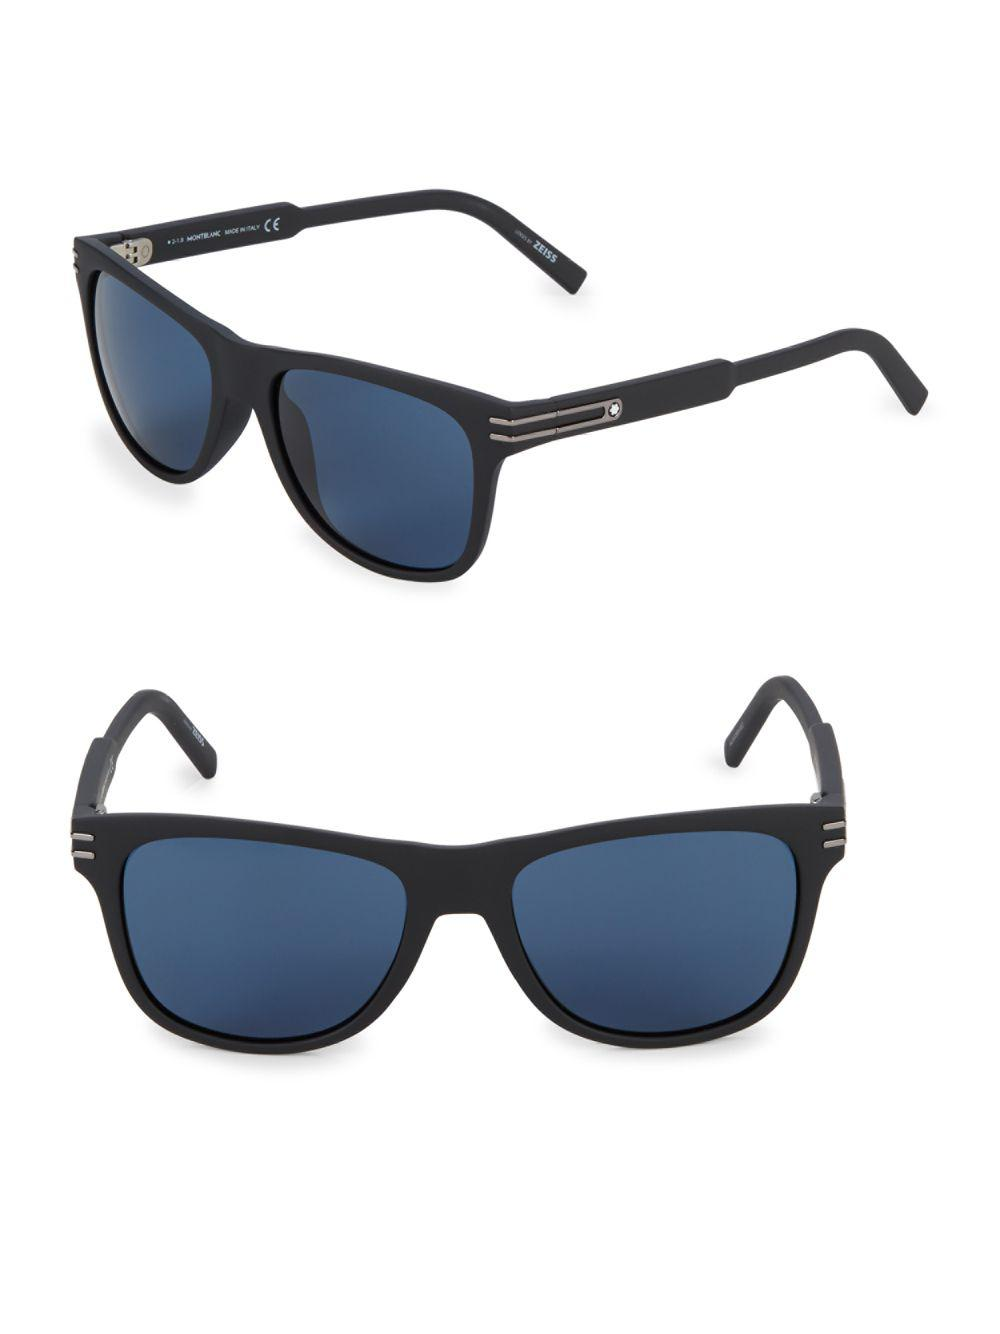 1faab8a2ab Lyst - Montblanc Injected 56mm Aviator Sunglasses in Black for Men